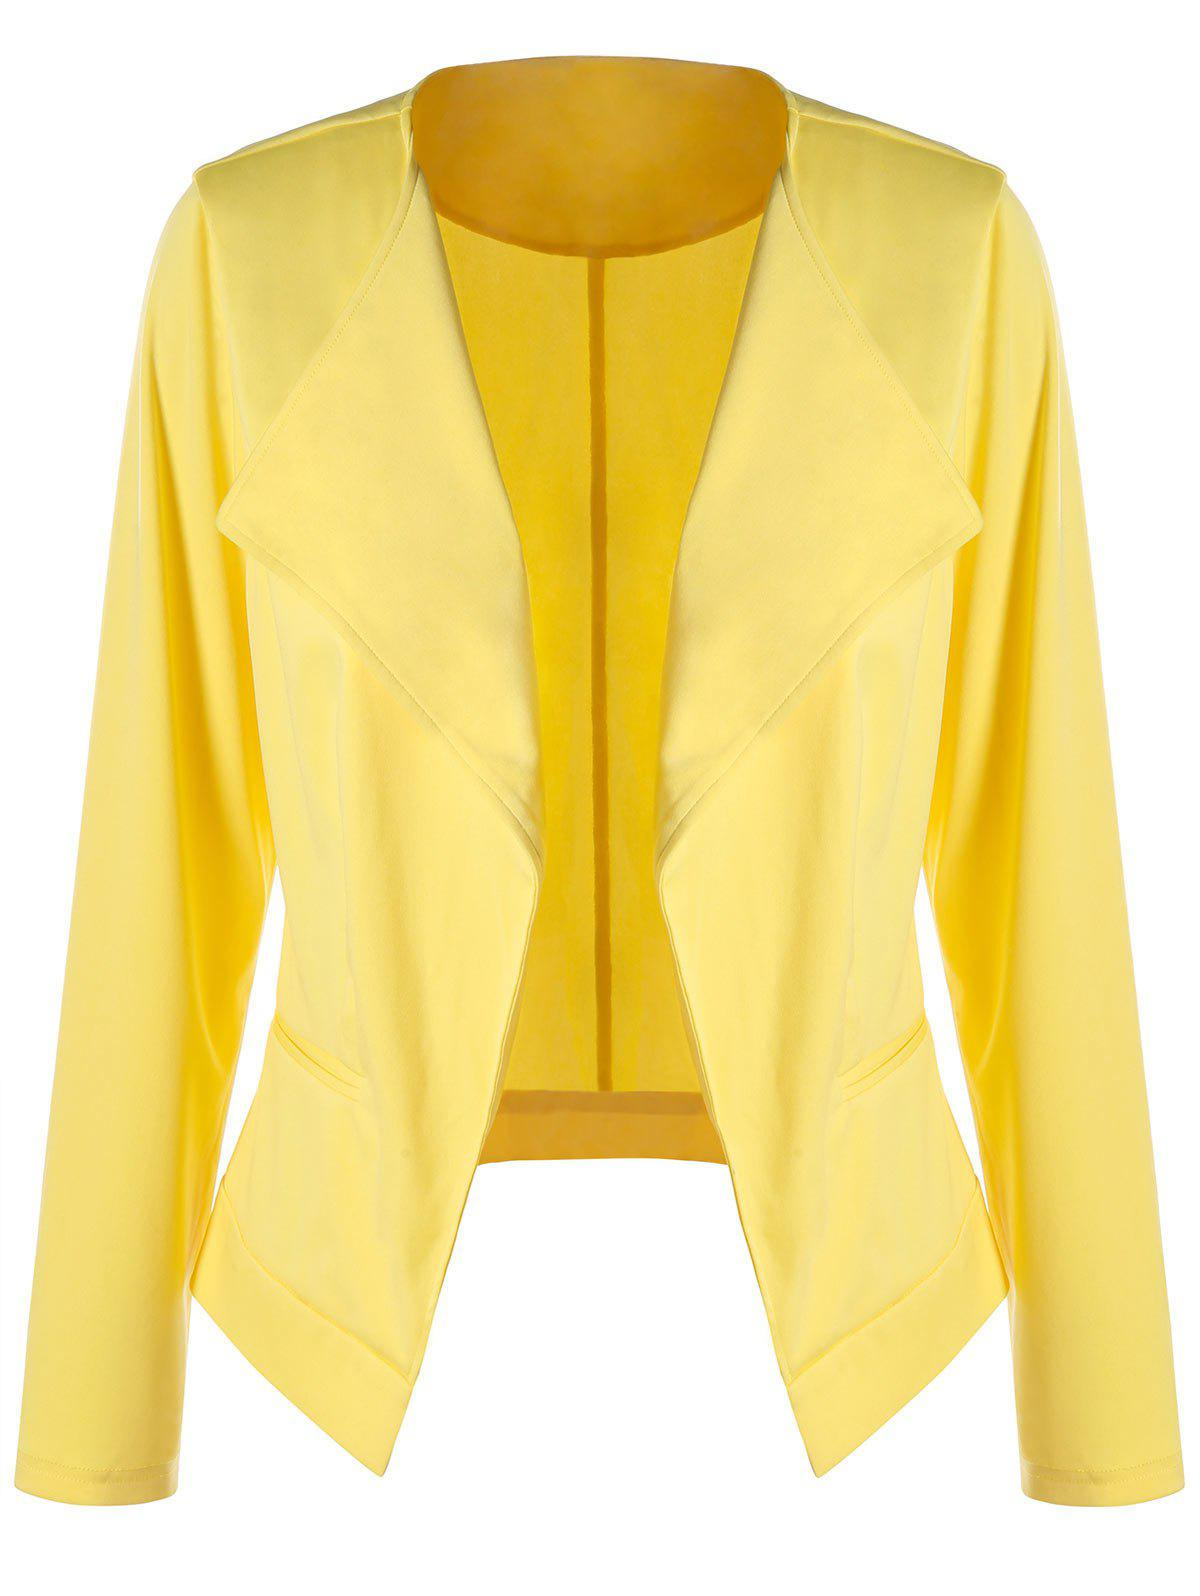 Plus Size Waterfall BlazerWOMEN<br><br>Size: 2XL; Color: YELLOW; Clothes Type: Jackets; Material: Polyester,Spandex; Type: Slim; Shirt Length: Regular; Sleeve Length: Full; Collar: Collarless; Pattern Type: Solid; Style: Fashion; Season: Fall,Spring,Summer; Weight: 0.3200kg; Package Contents: 1 x Blazer;